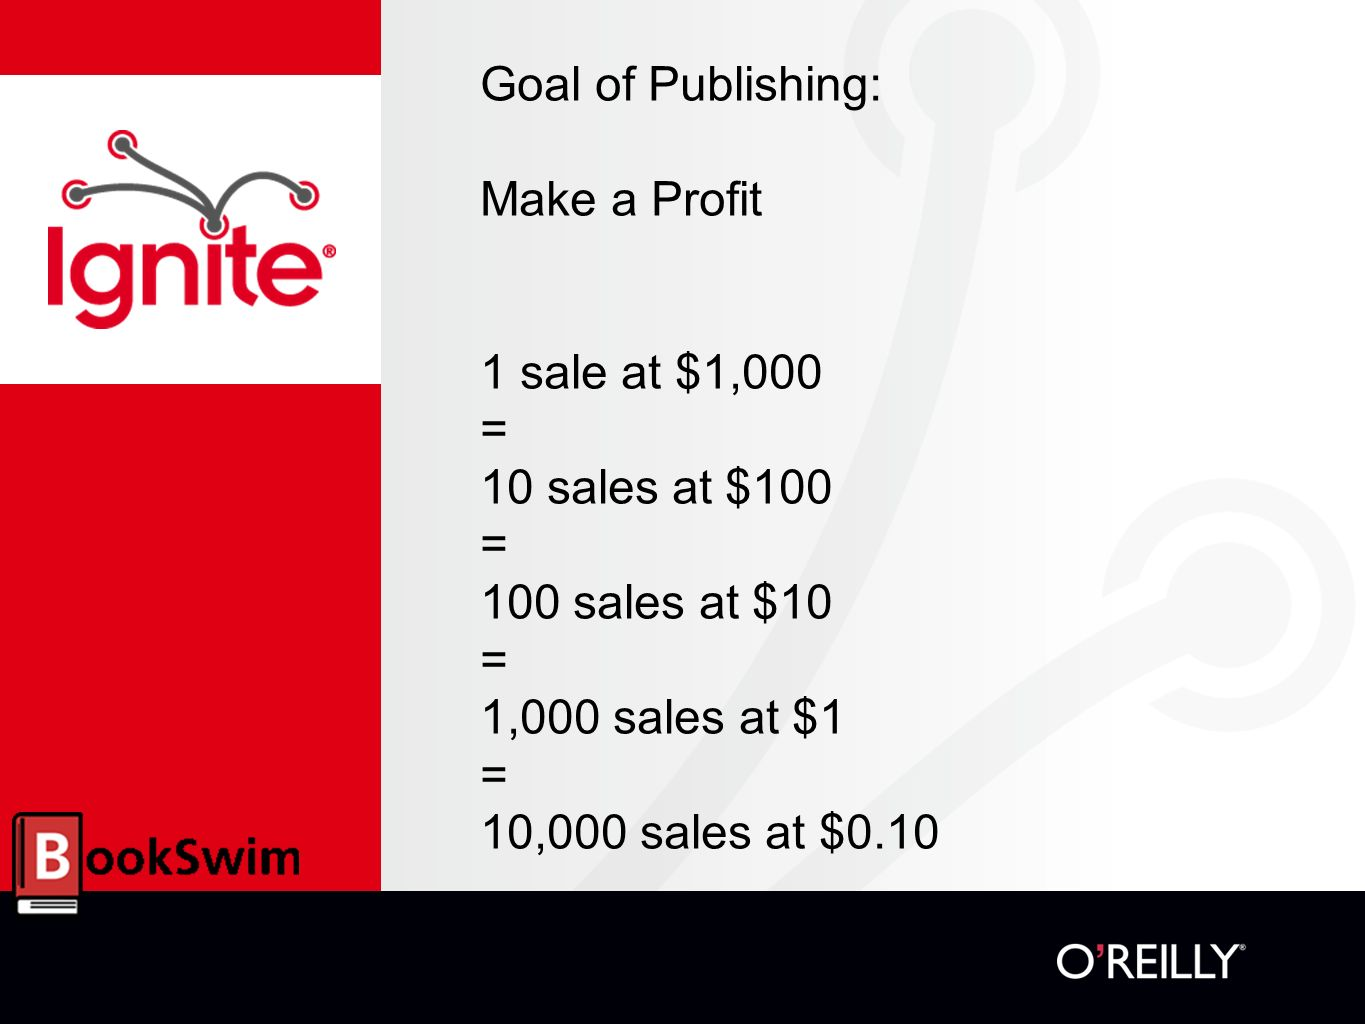 Goal of Publishing: Make a Profit 1 sale at $1,000 = 10 sales at $100 = 100 sales at $10 = 1,000 sales at $1 = 10,000 sales at $0.10